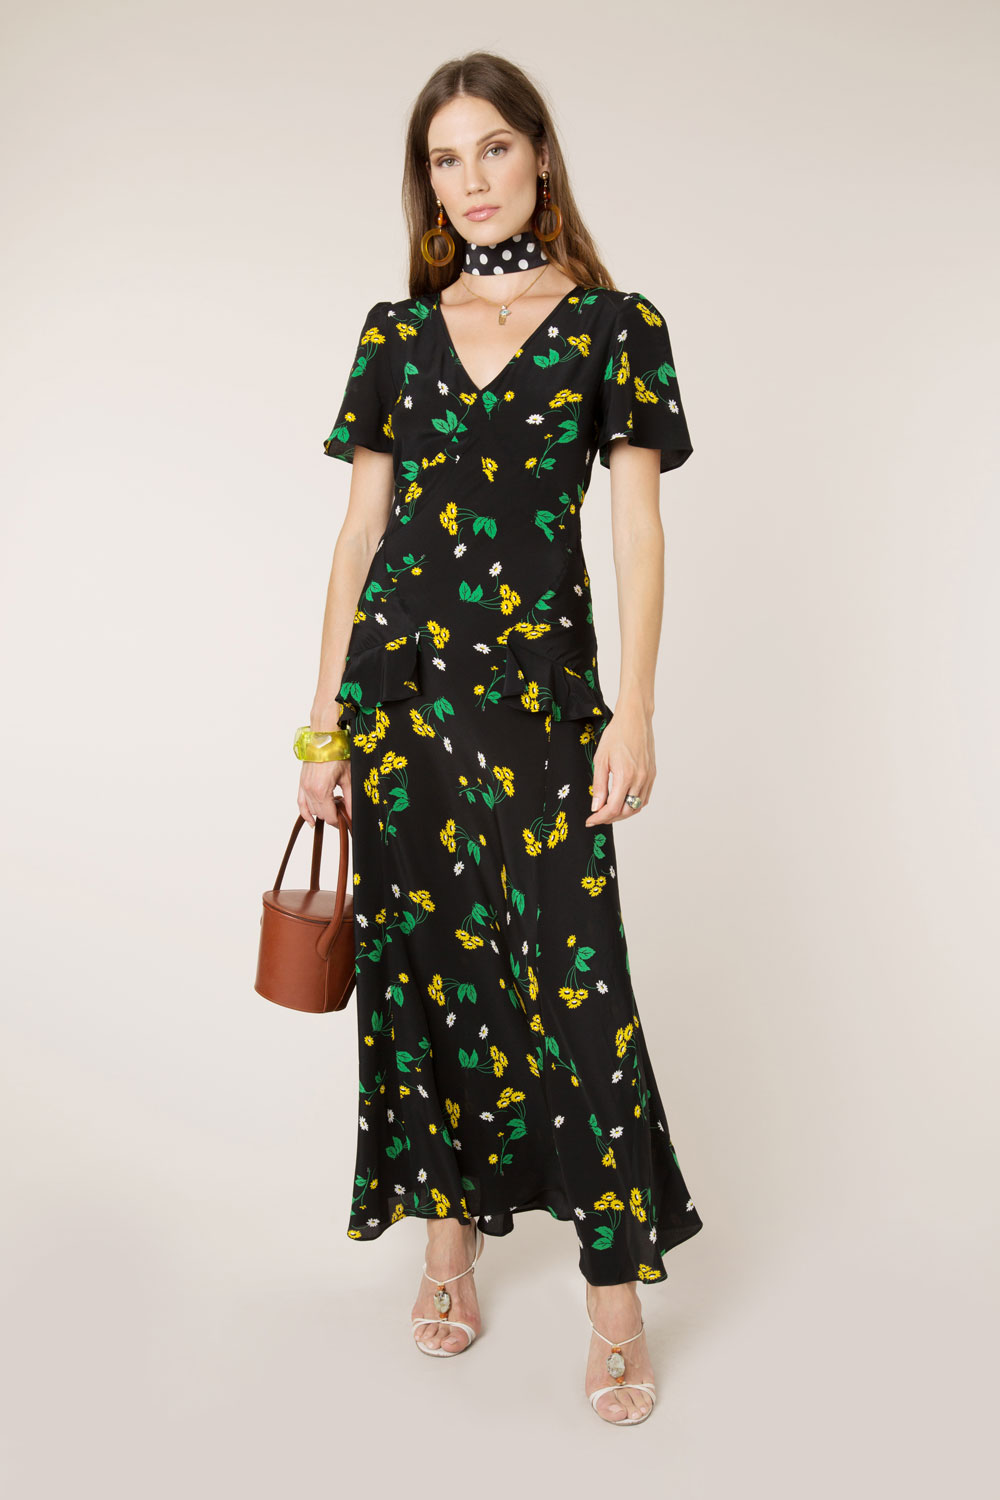 RIXO - Bunched Daisy Evie Dress